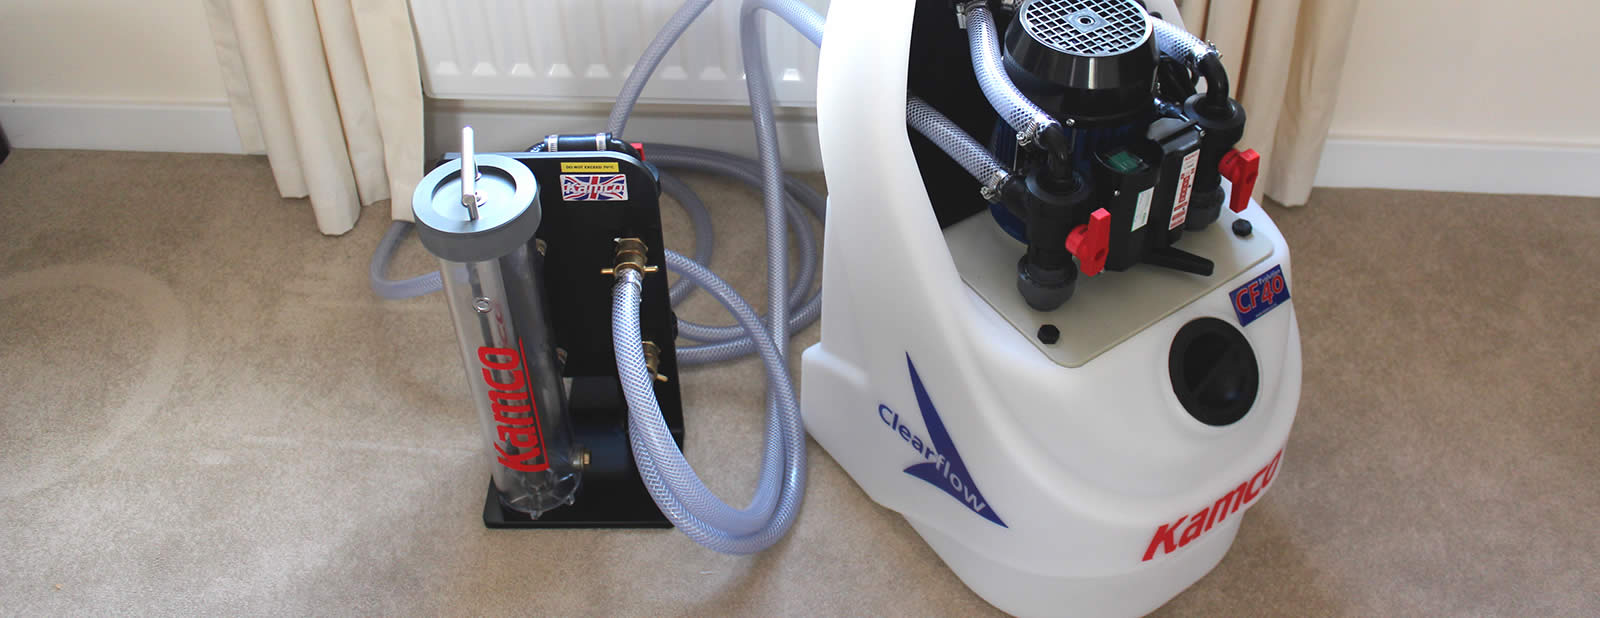 Peter Brown Power flushing Services